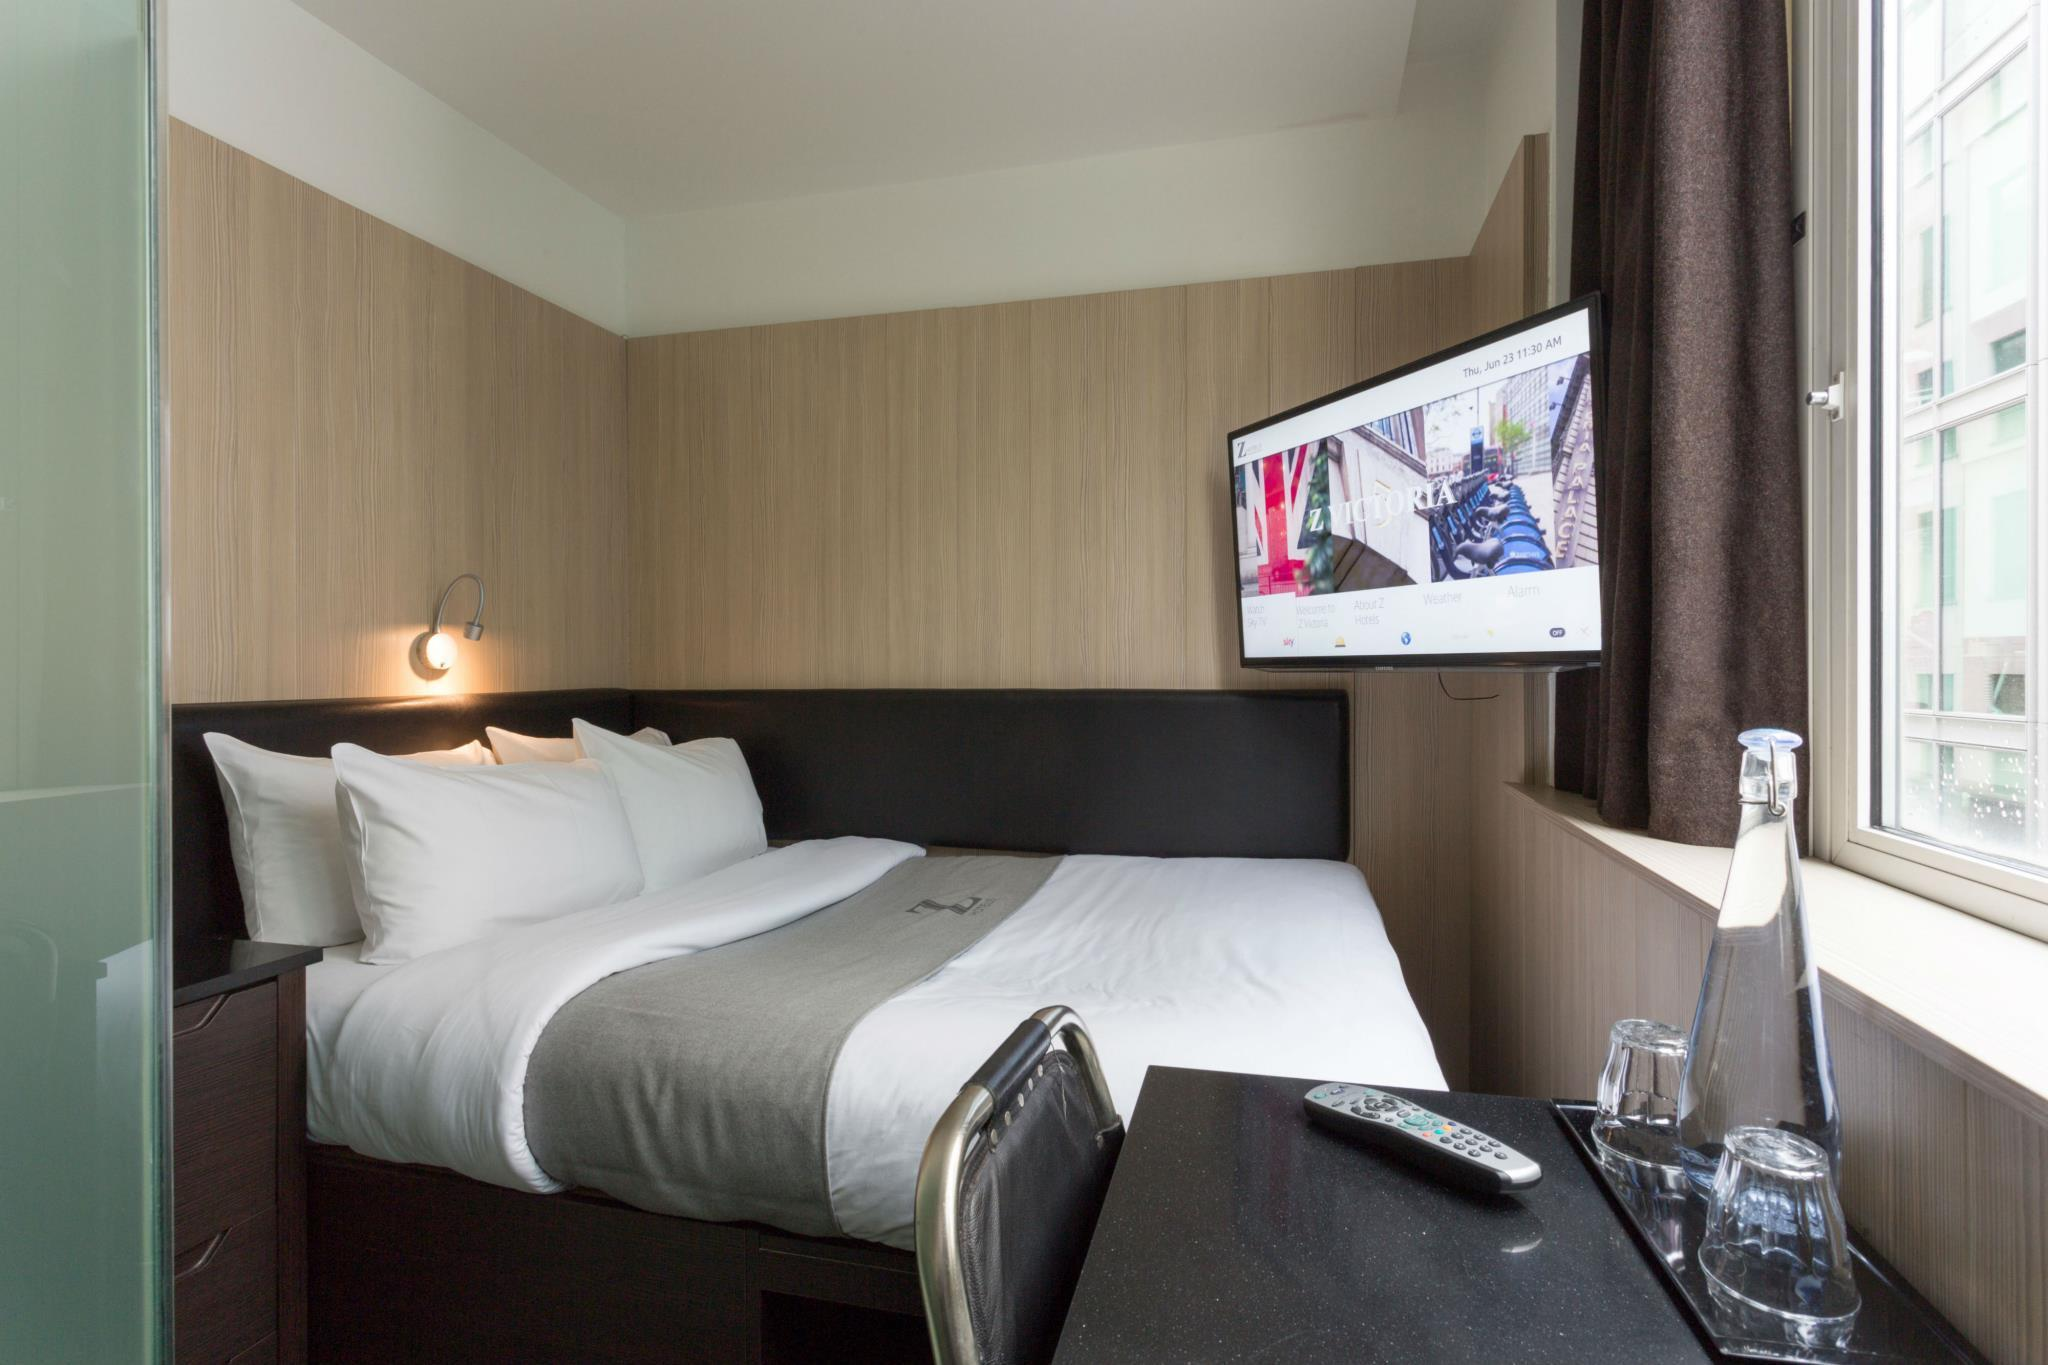 The Z Hotel Victoria in London - Room Deals, Photos & Reviews